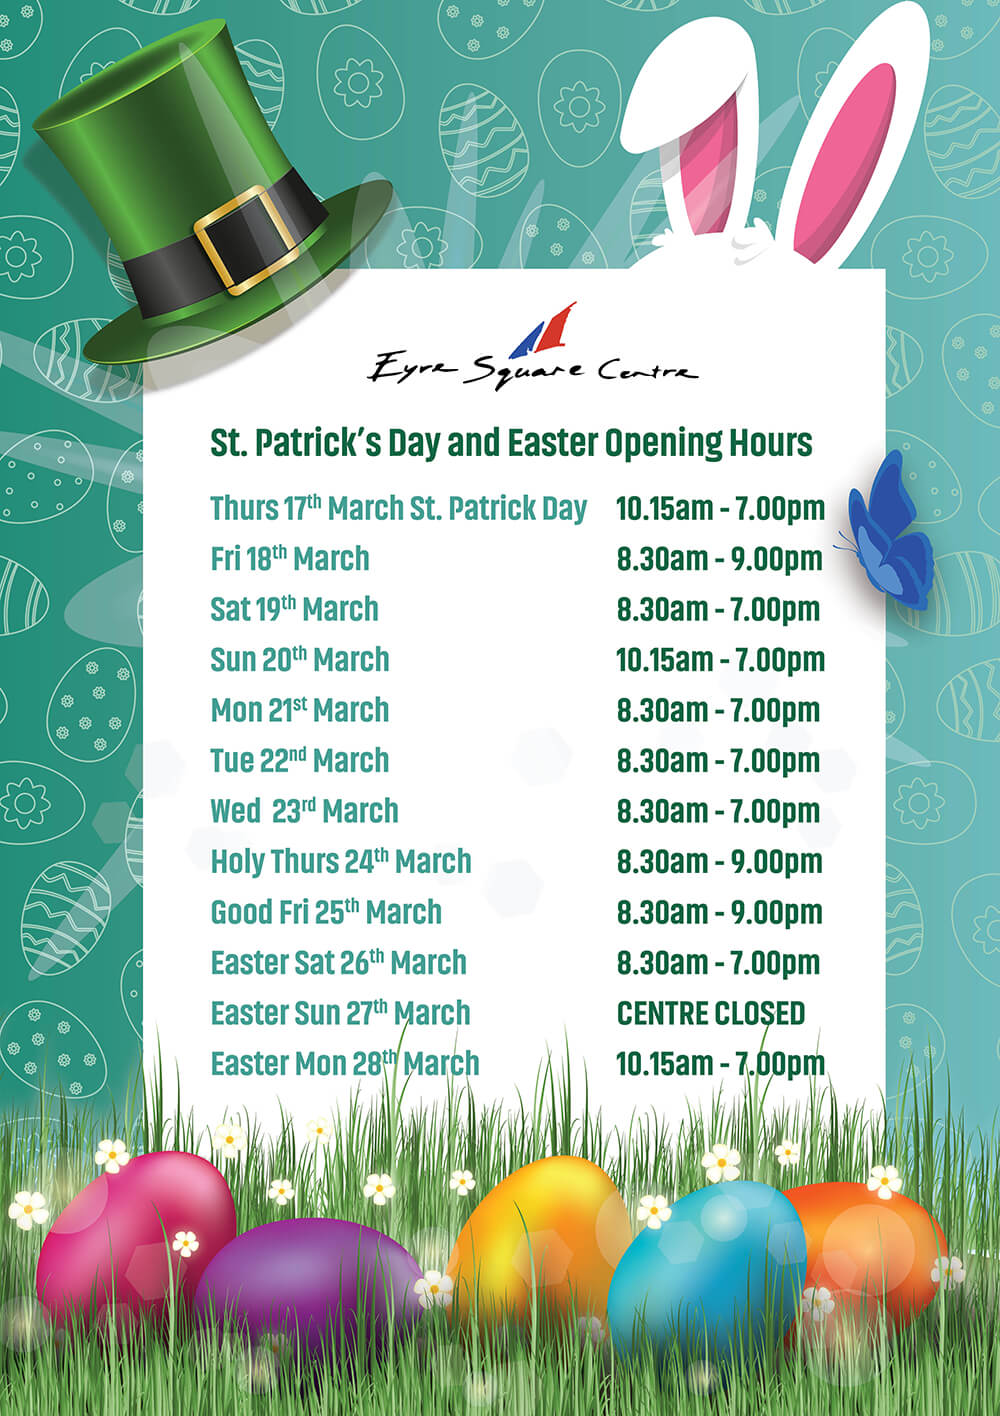 EyreSQ_A1_Opening Hours_St Patrick_Easter